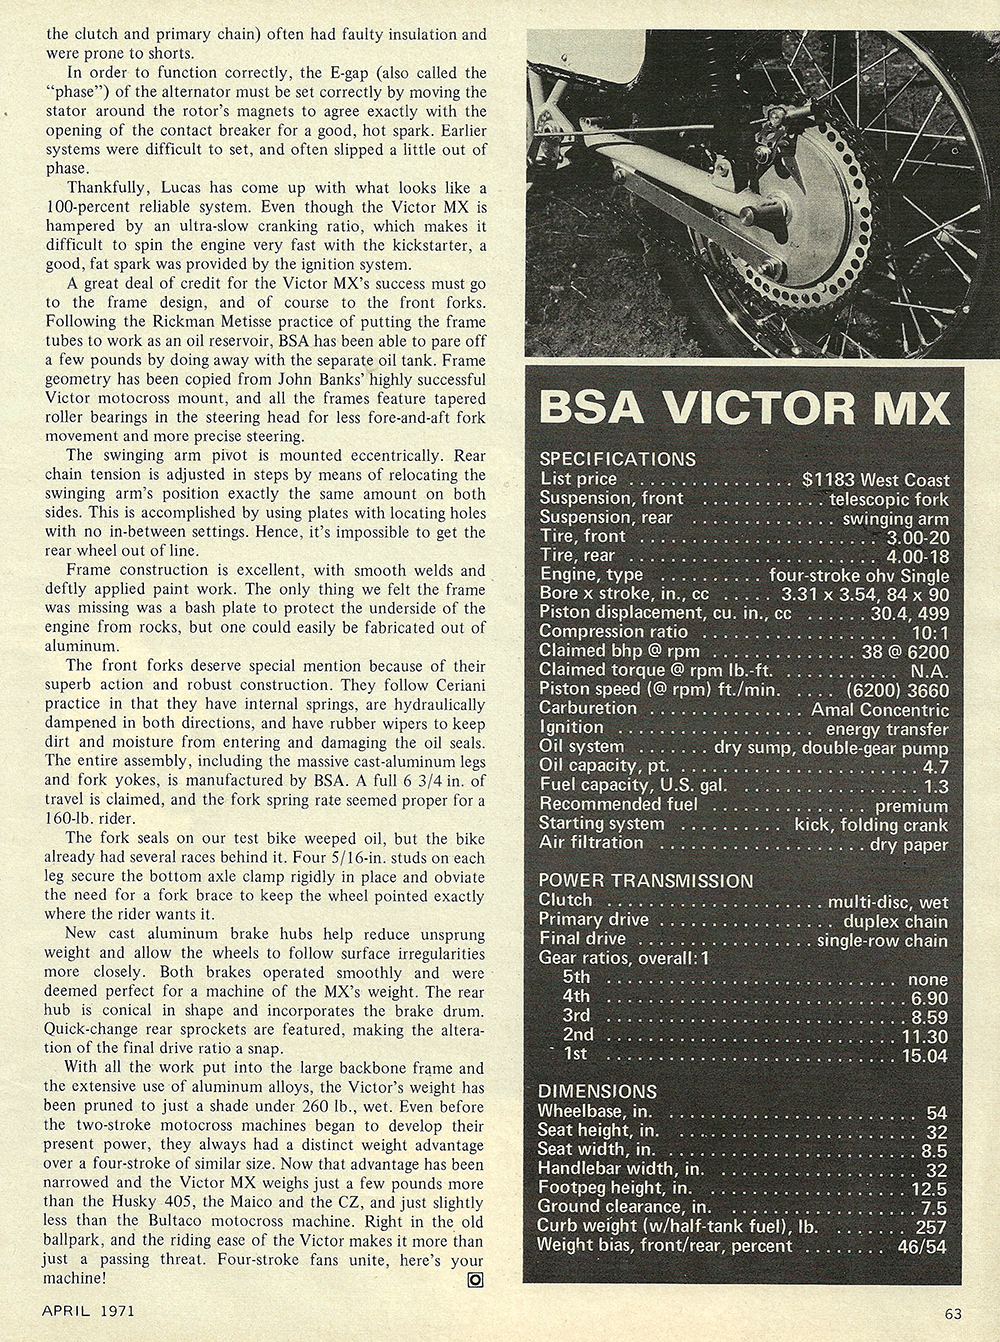 1971 BSA Victor MX road test 04.jpg